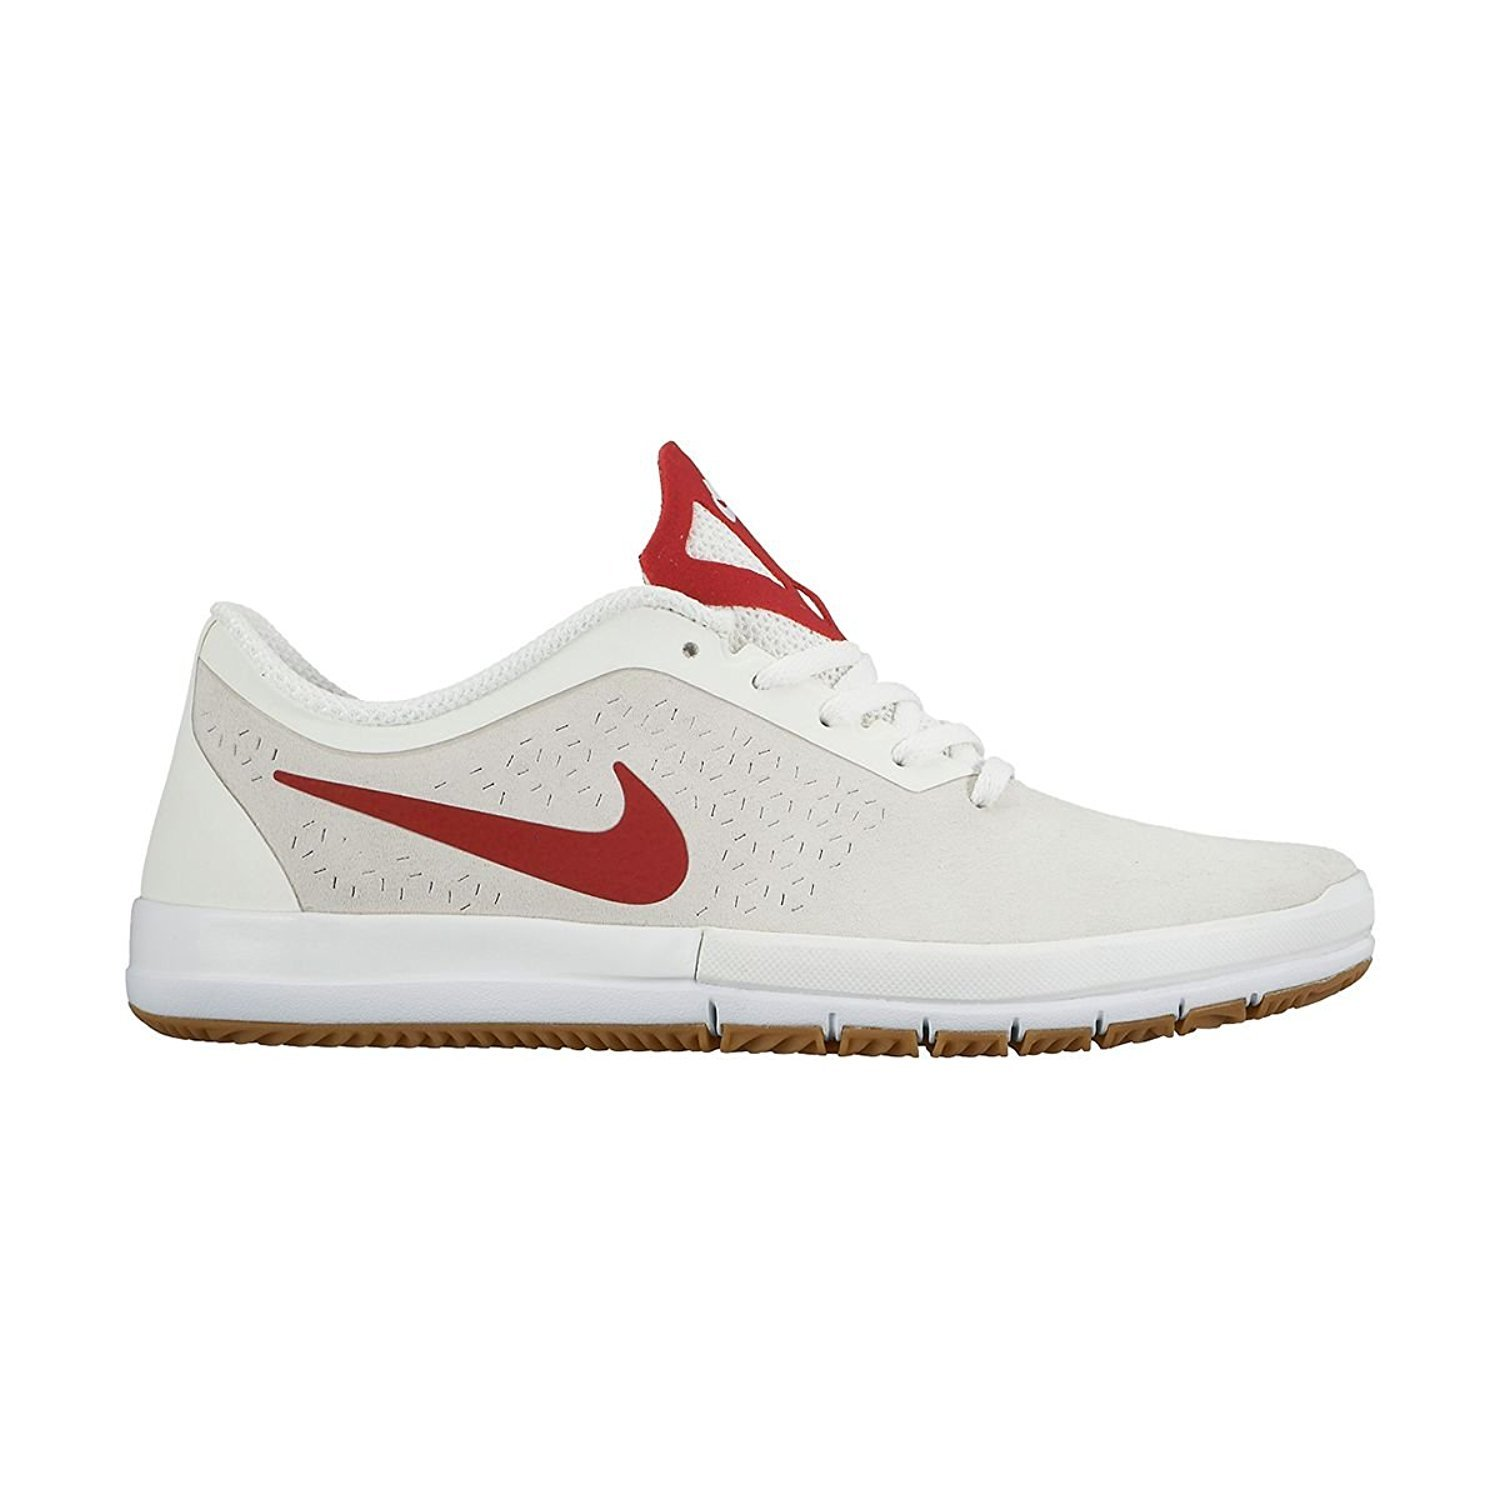 best supplier best quality 50% price Nike Free SB Nano Skate Shoe - Mens Summit White/Gym Red ...